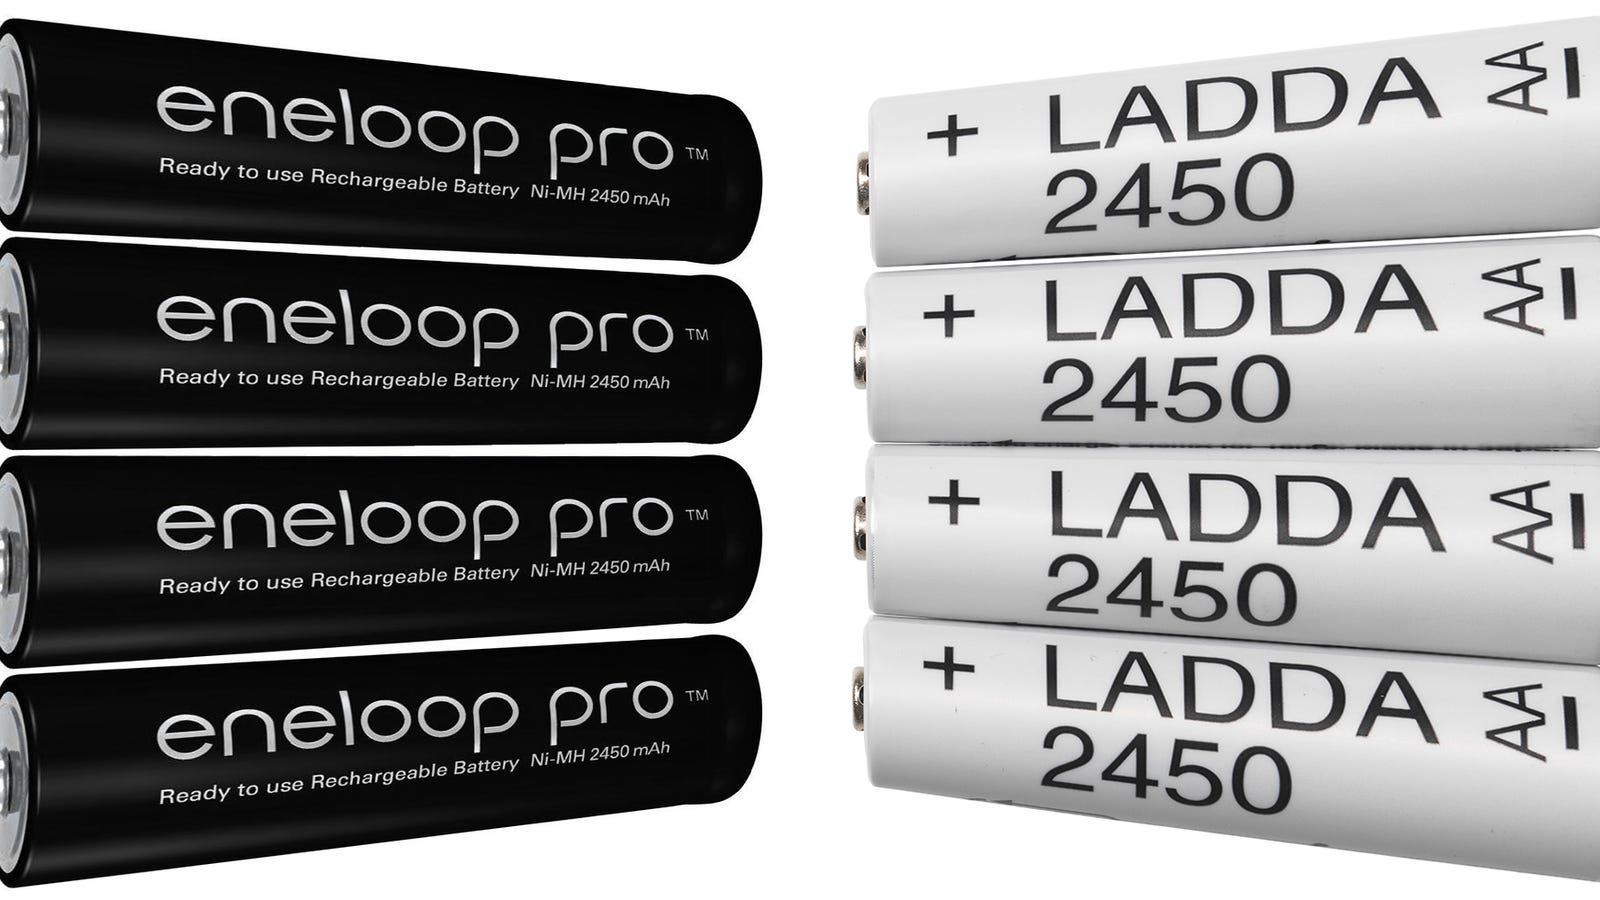 Are Ikea's $7 Rechargeable Batteries Actually Pricey Eneloop Pro AAs in Disguise?